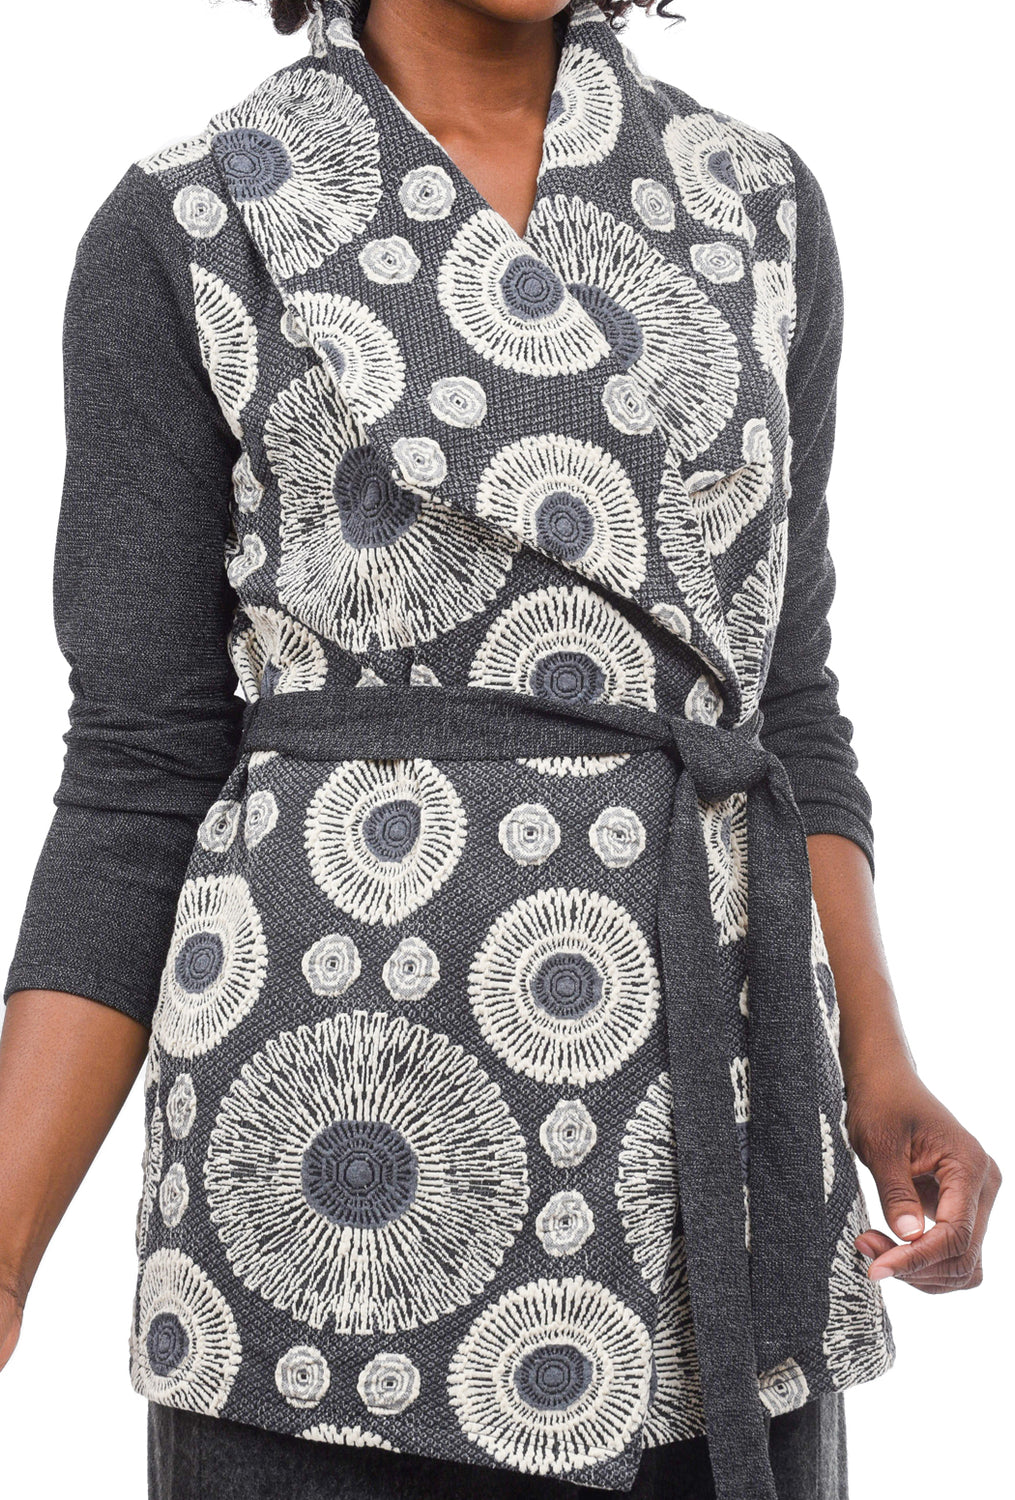 Mystree Crochet Details Jacket, Gray/Cream